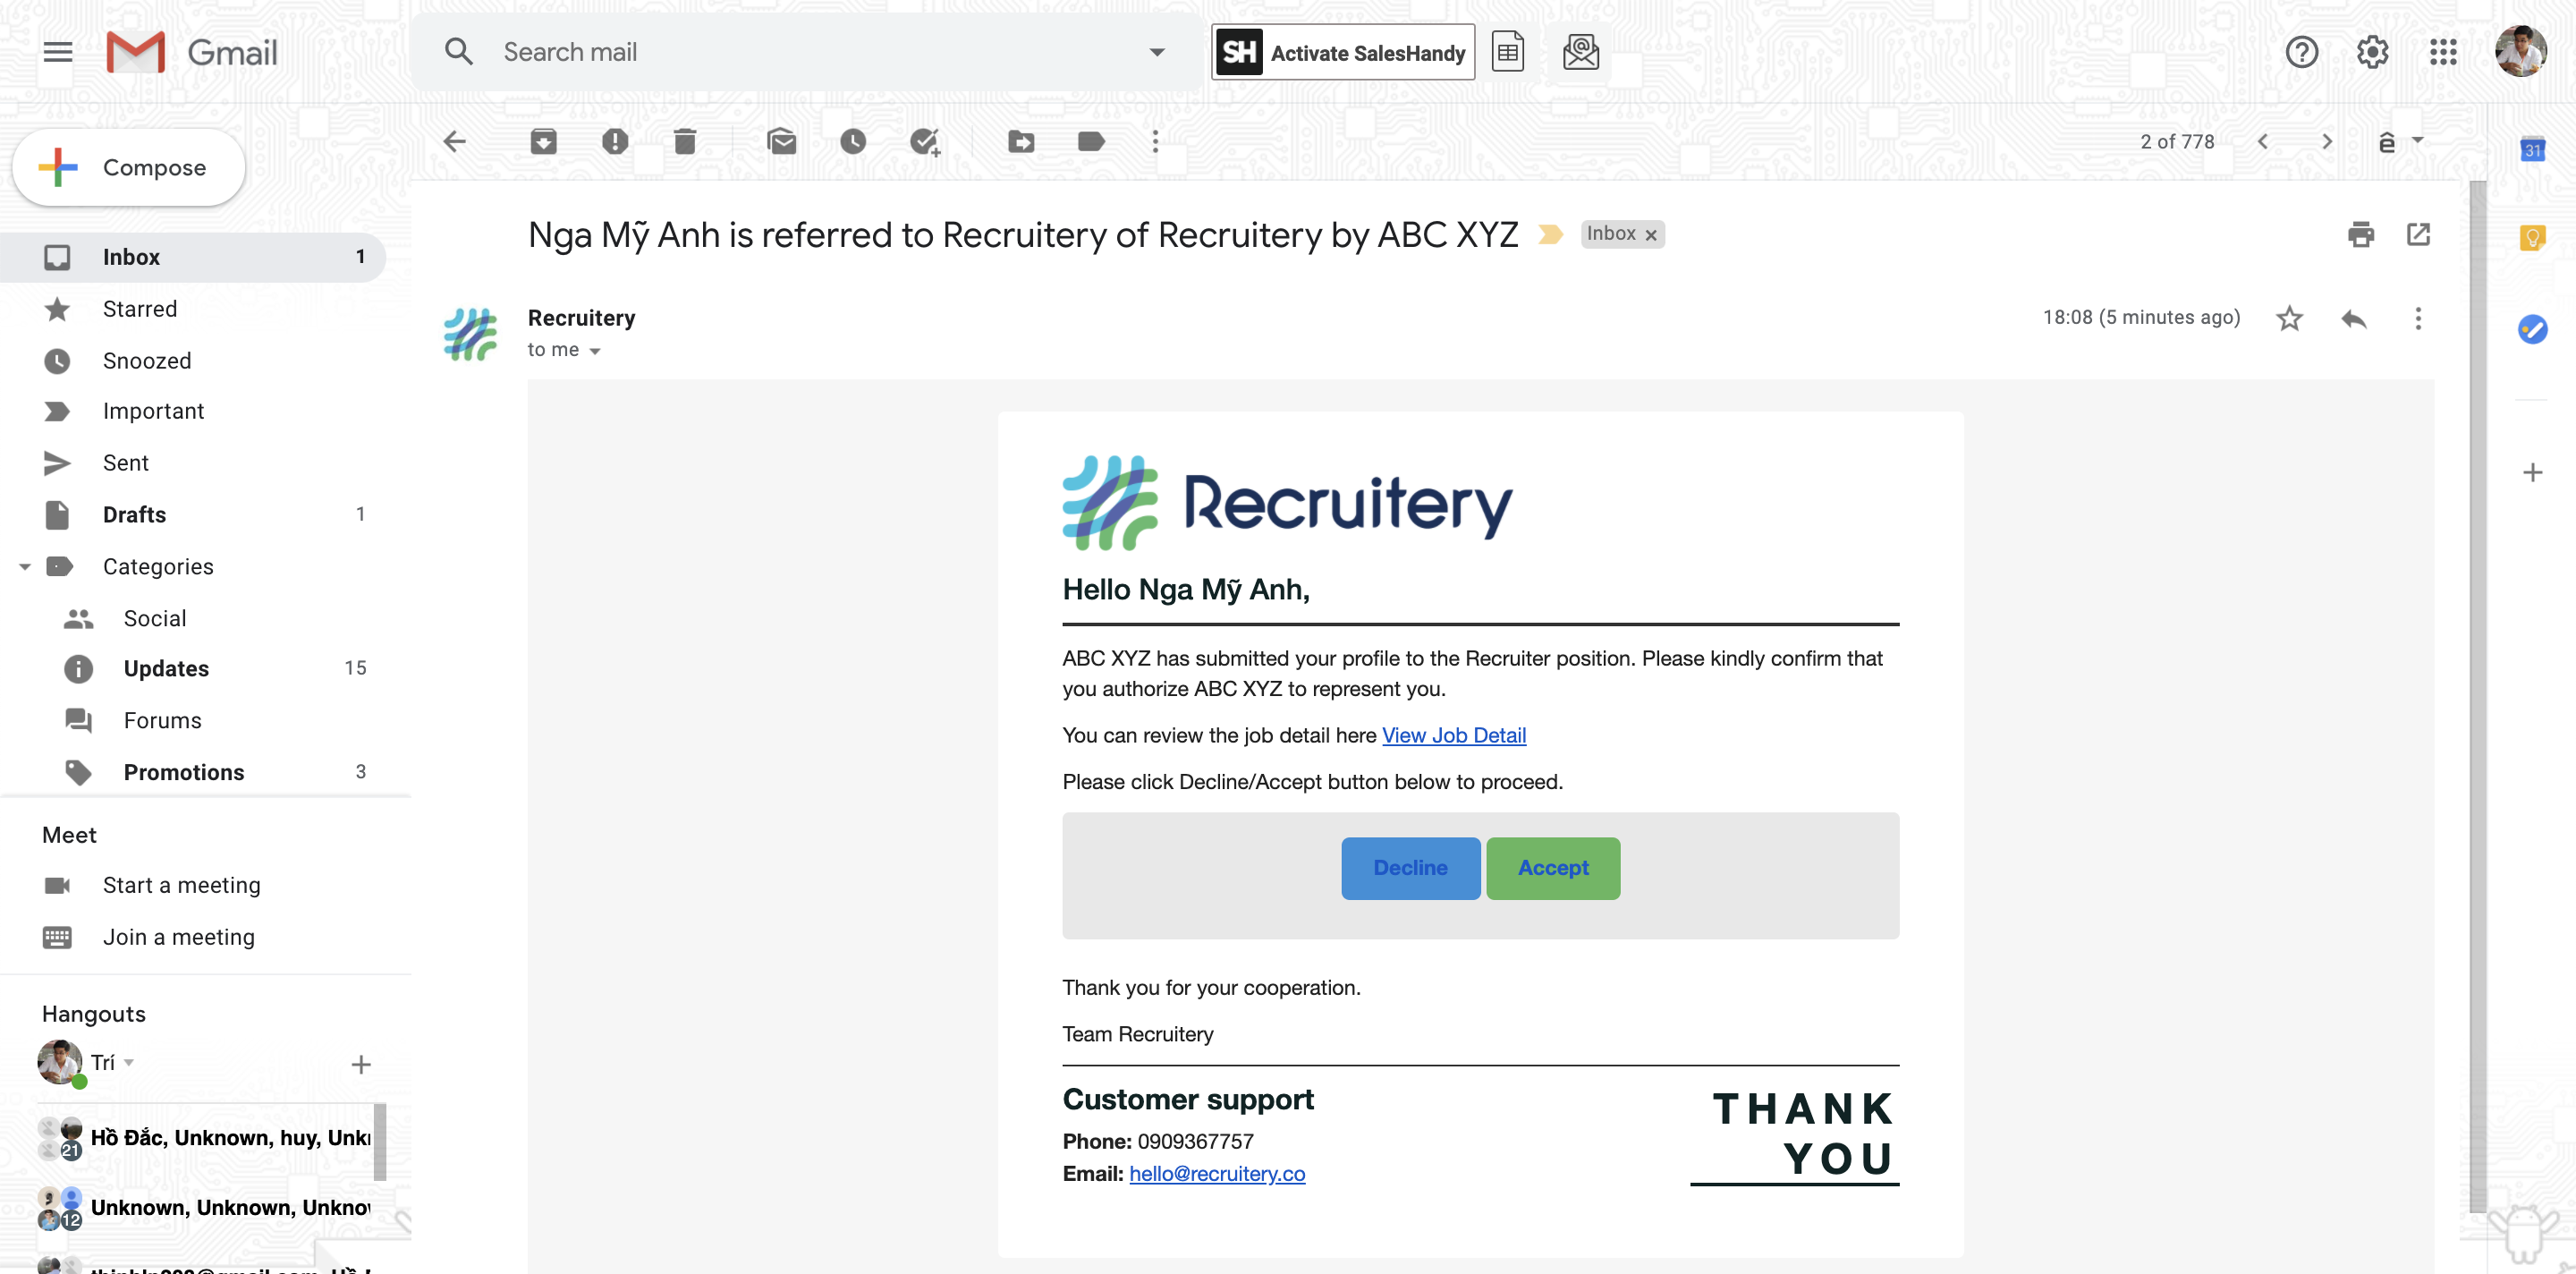 Accept offer - Recruitery